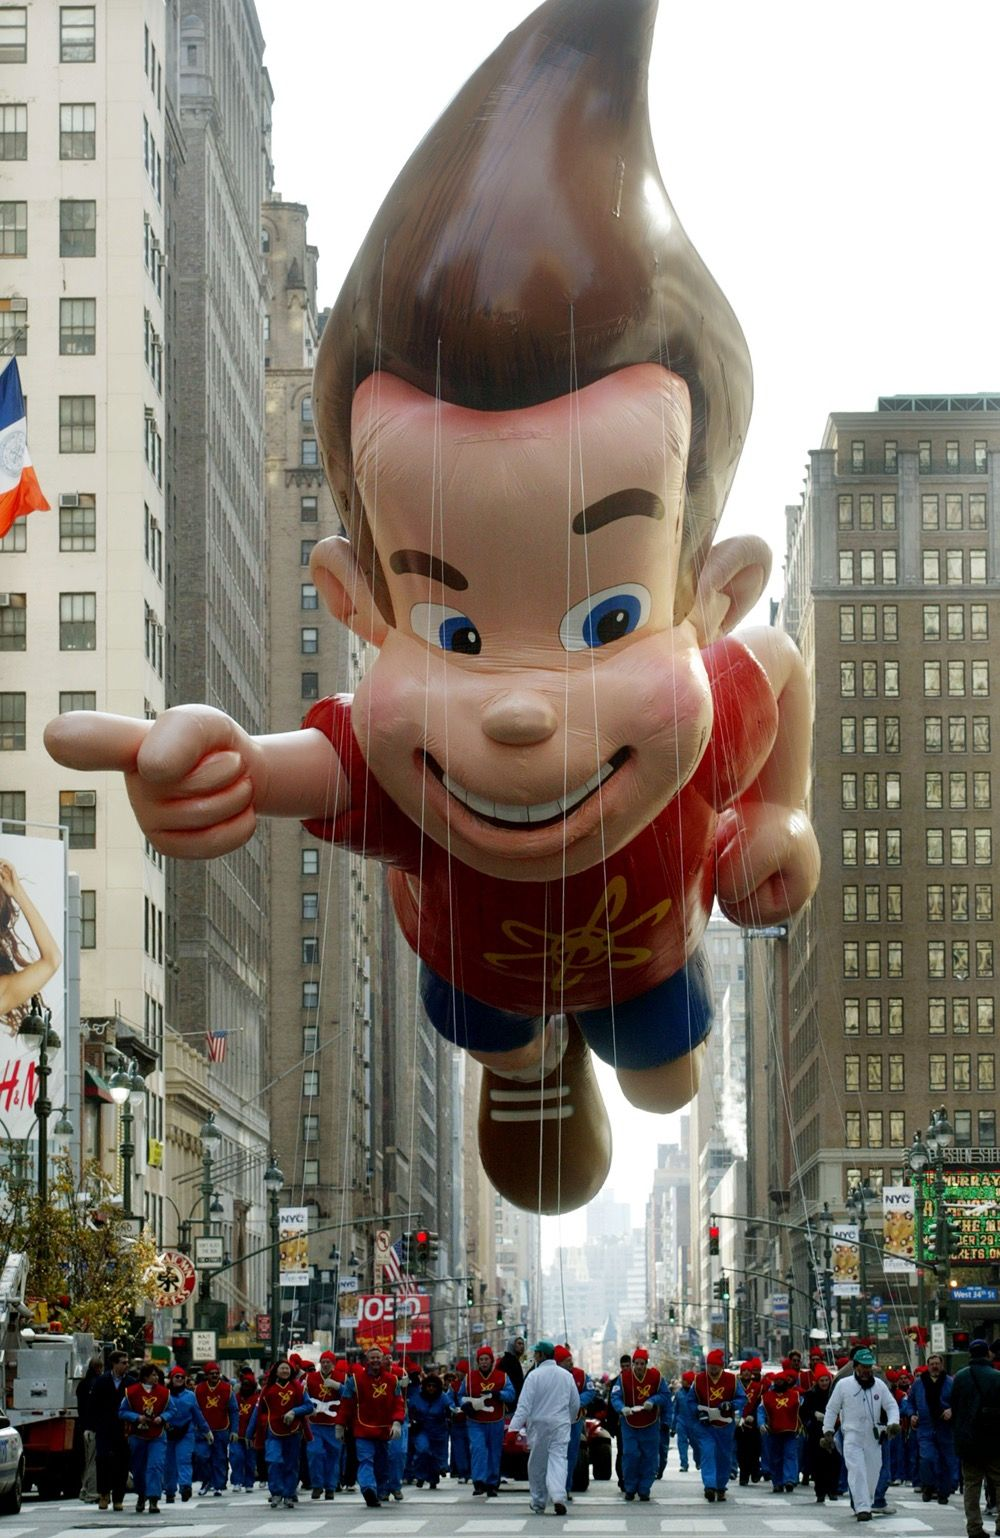 Balloons Of The Macy S Thanksgiving Day Parade Thanksgiving Day Parade Macys Thanksgiving Parade Thanksgiving Parade